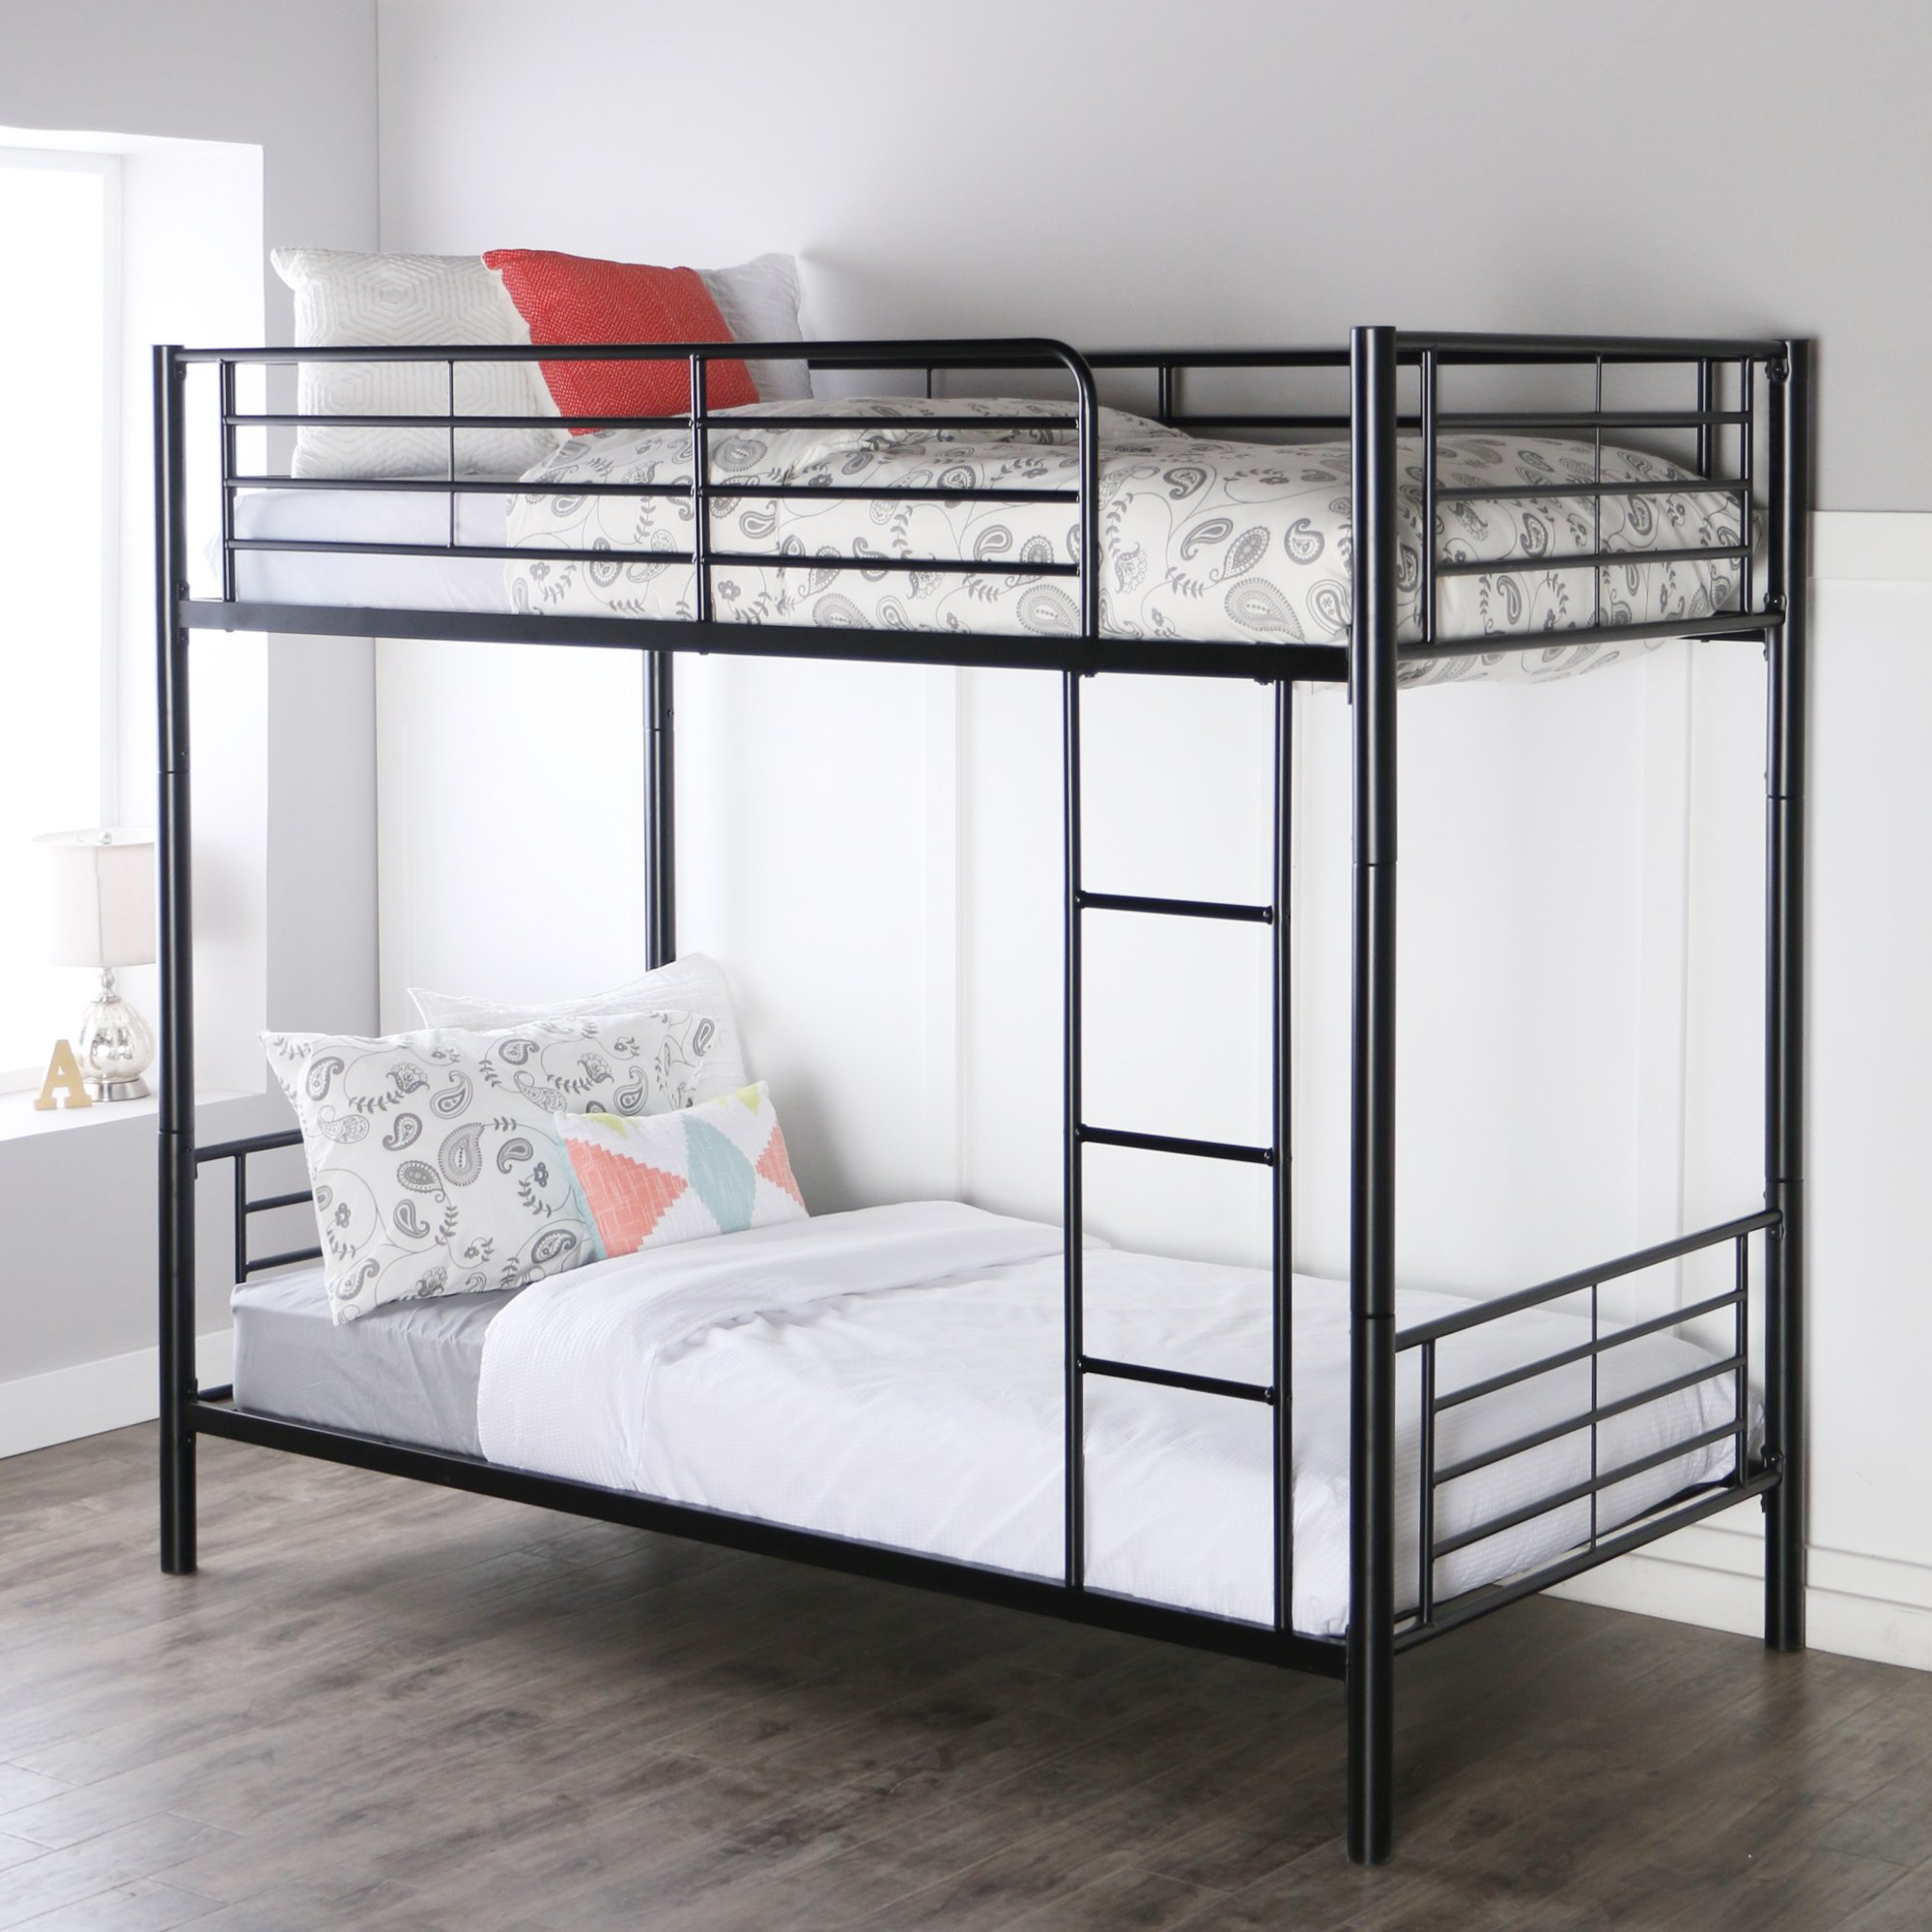 Sturdy Metal Twin-over-Twin Bunk Bed in Black Finish by Home Accent Furnishings (Image #2)